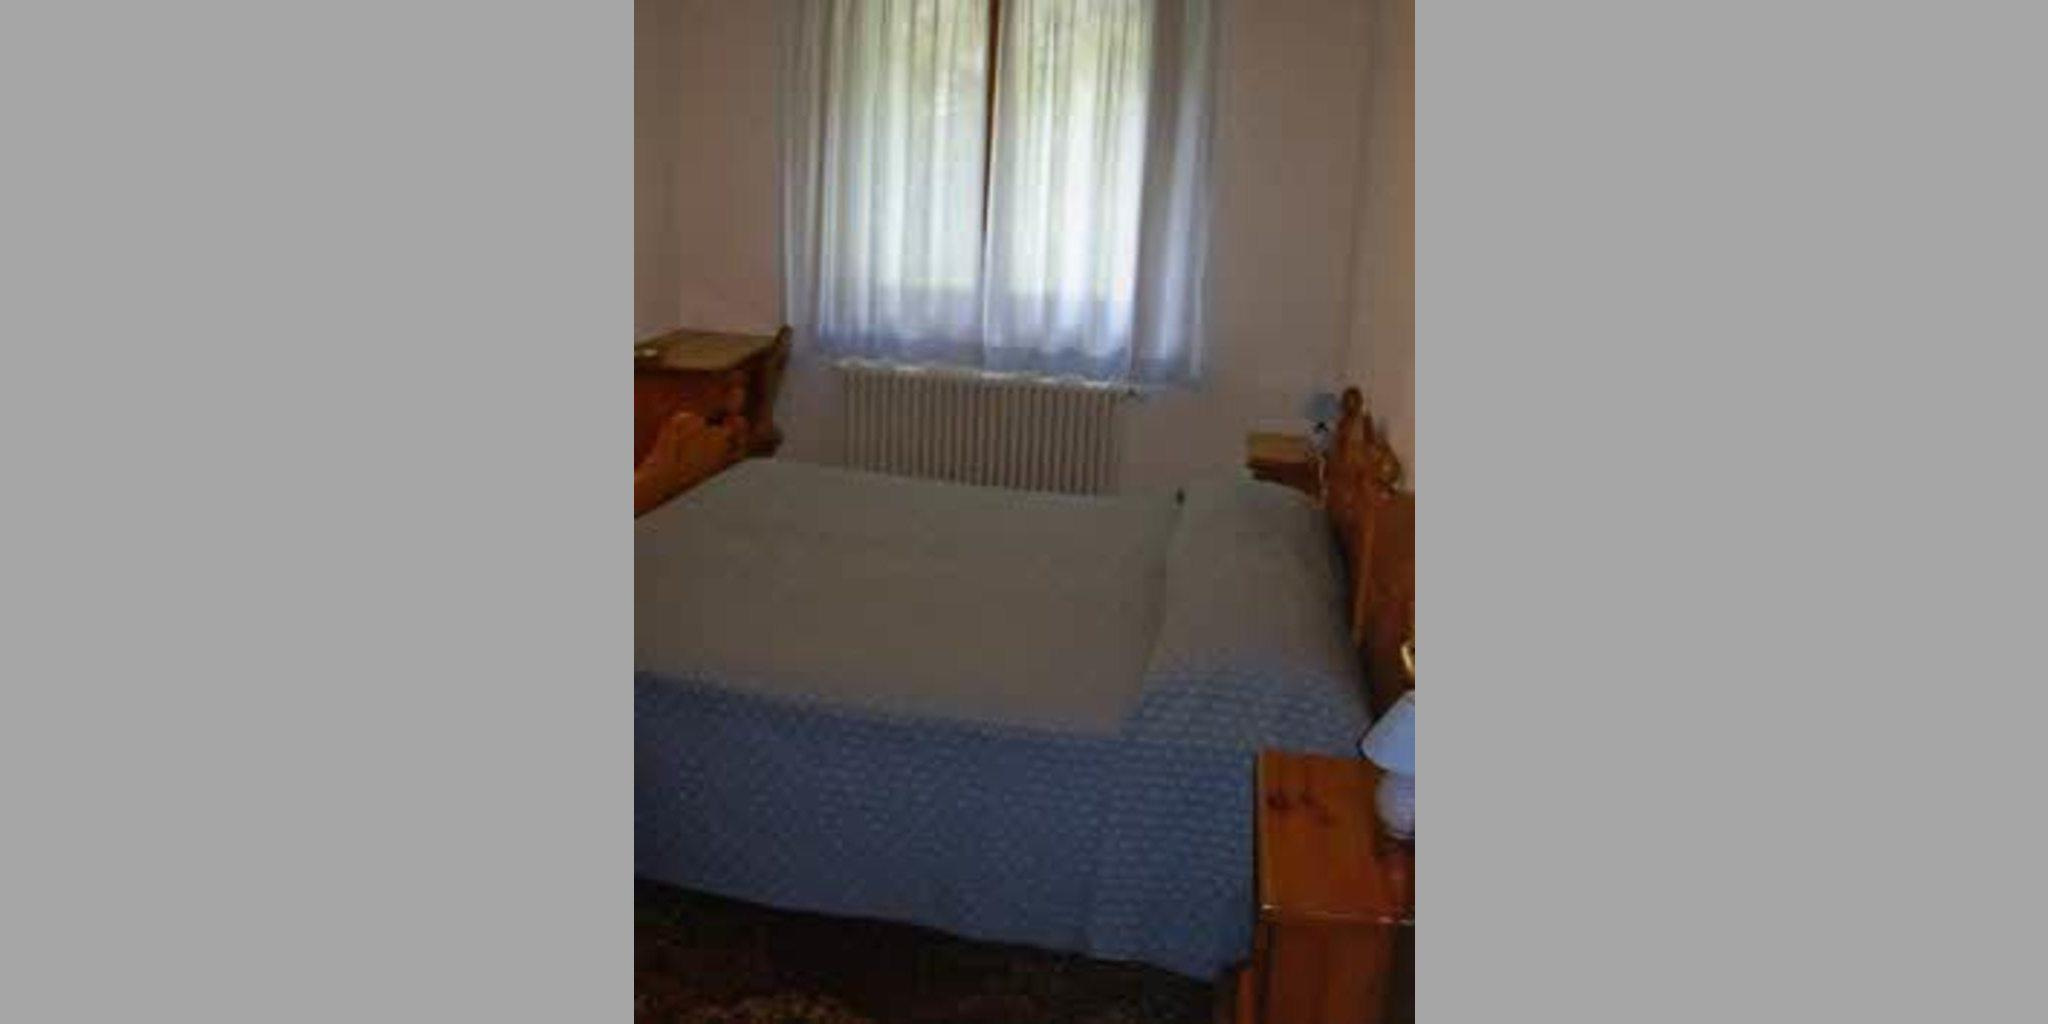 Bed & Breakfast Ollomont - Frazione Glassier